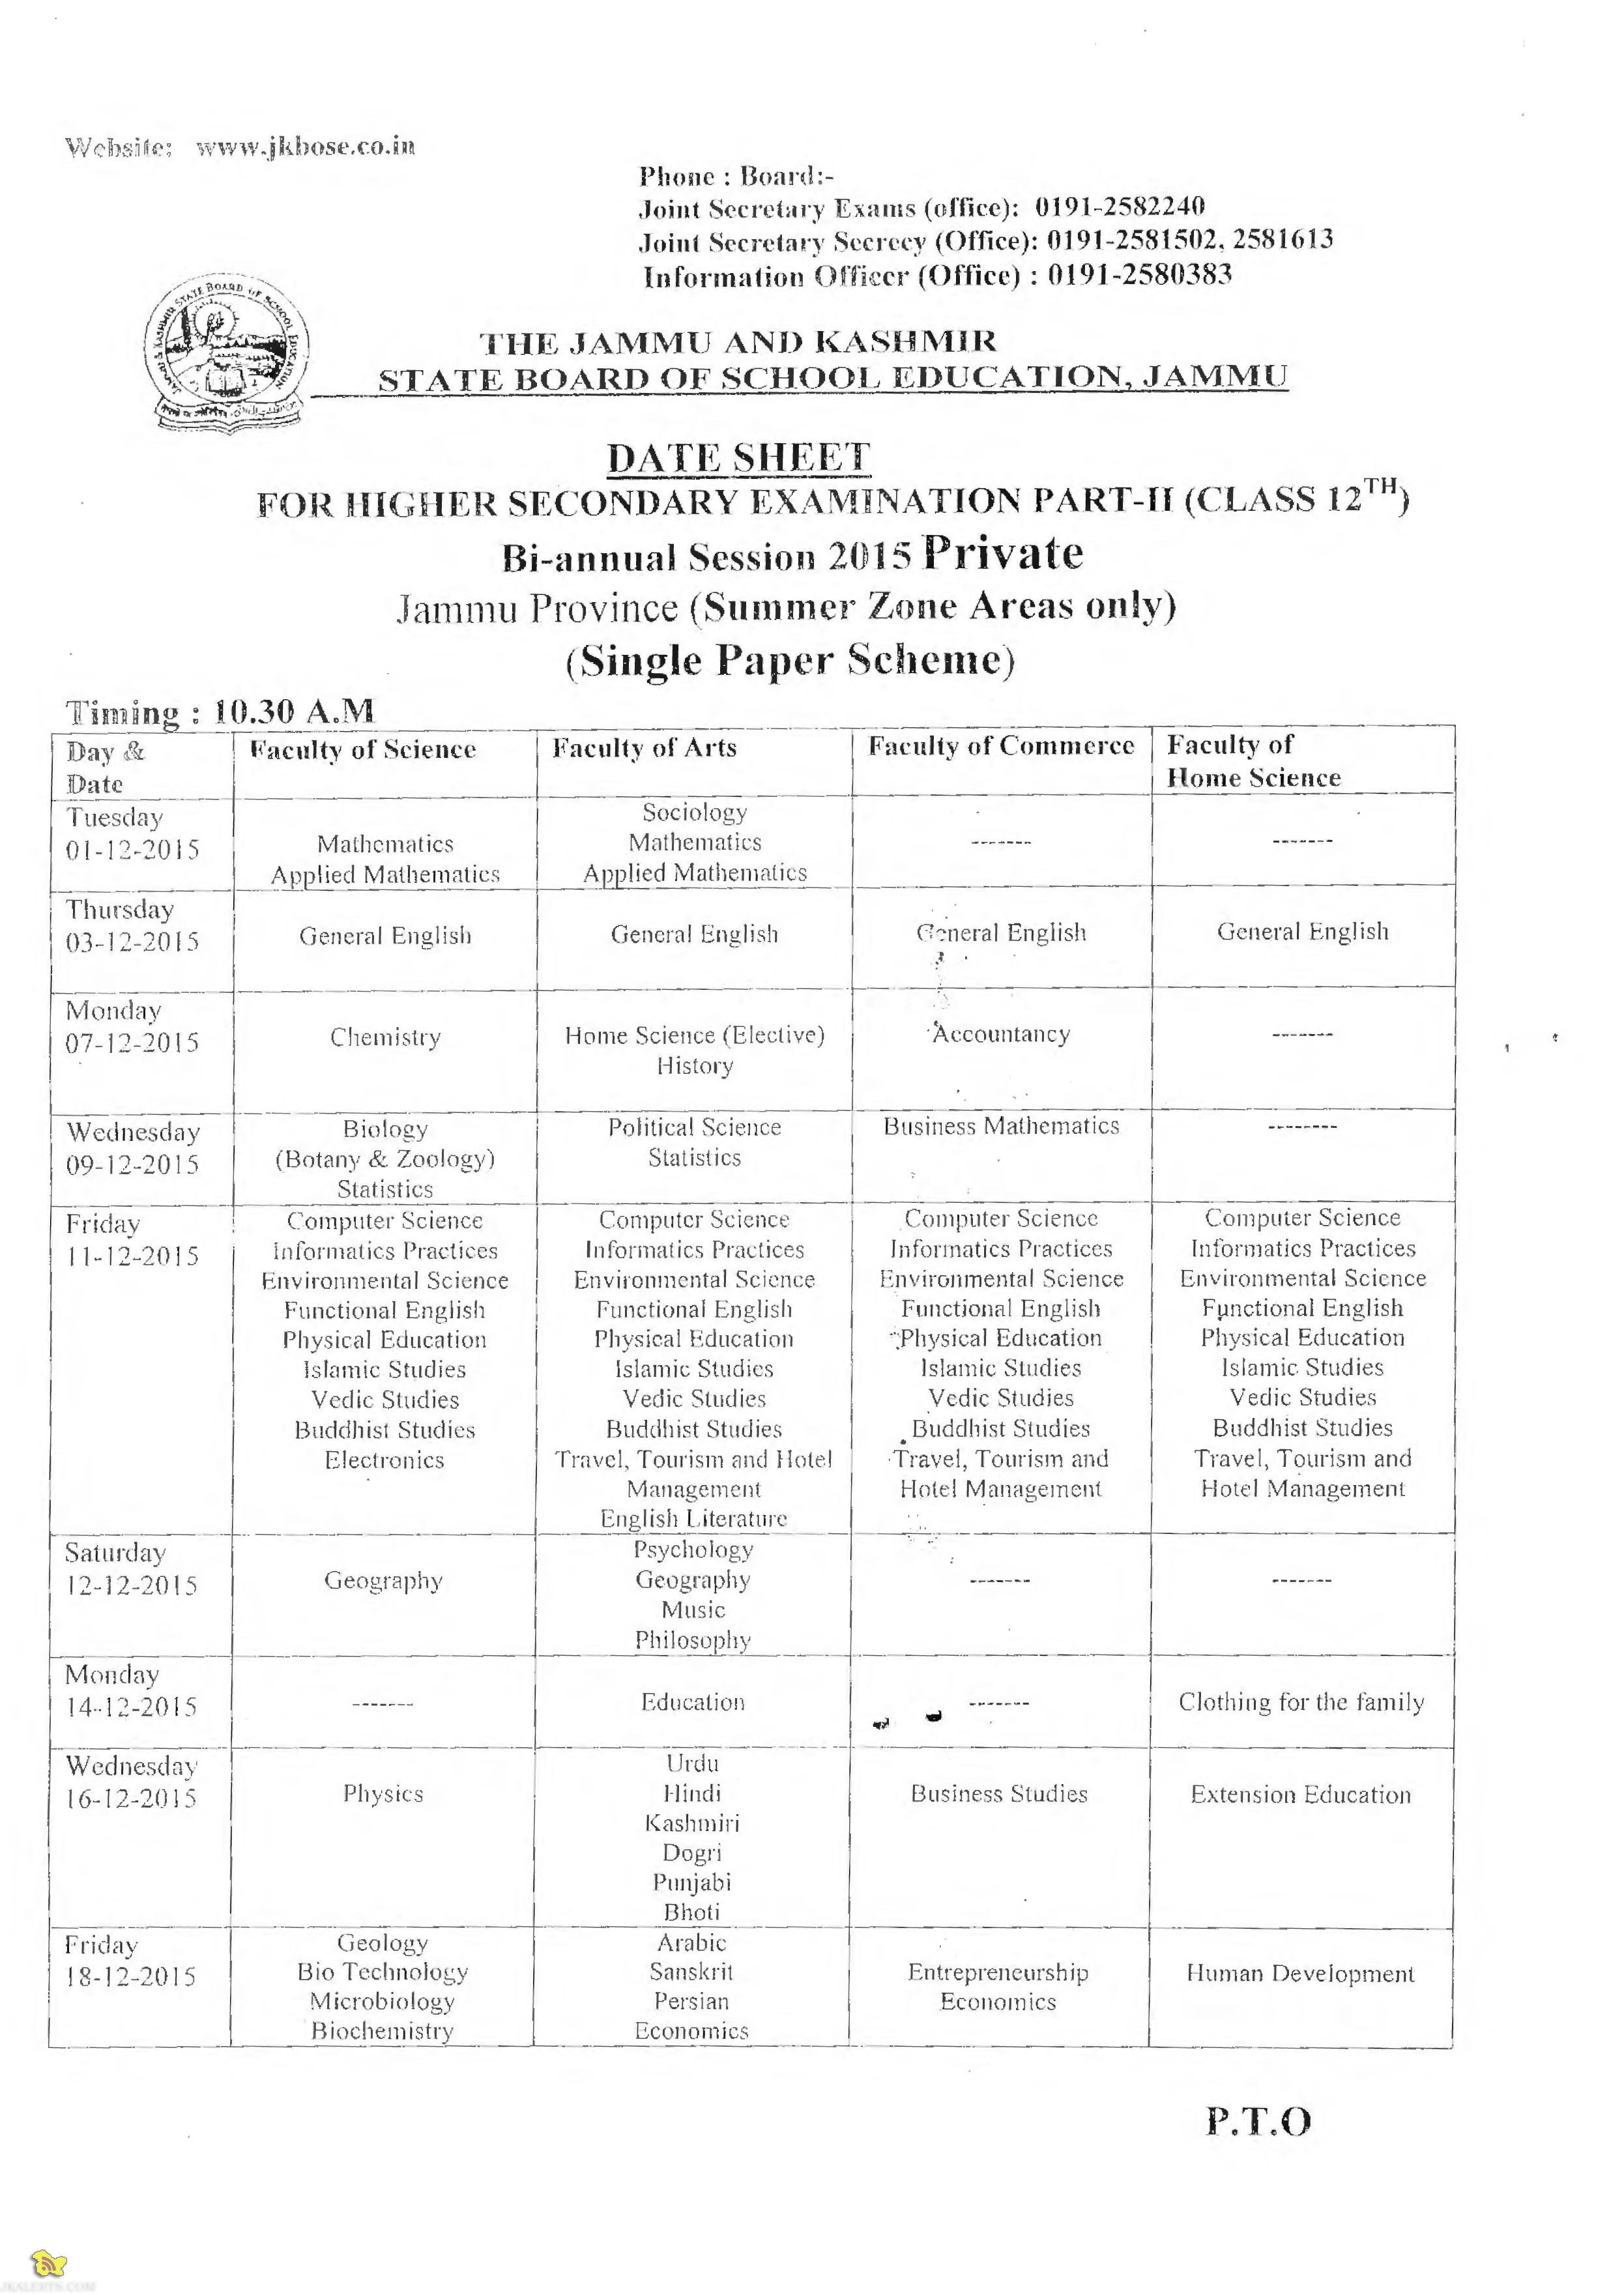 JKBOSE Class 12th Bi annual Datesheet Session 2015 Private Jammu Province